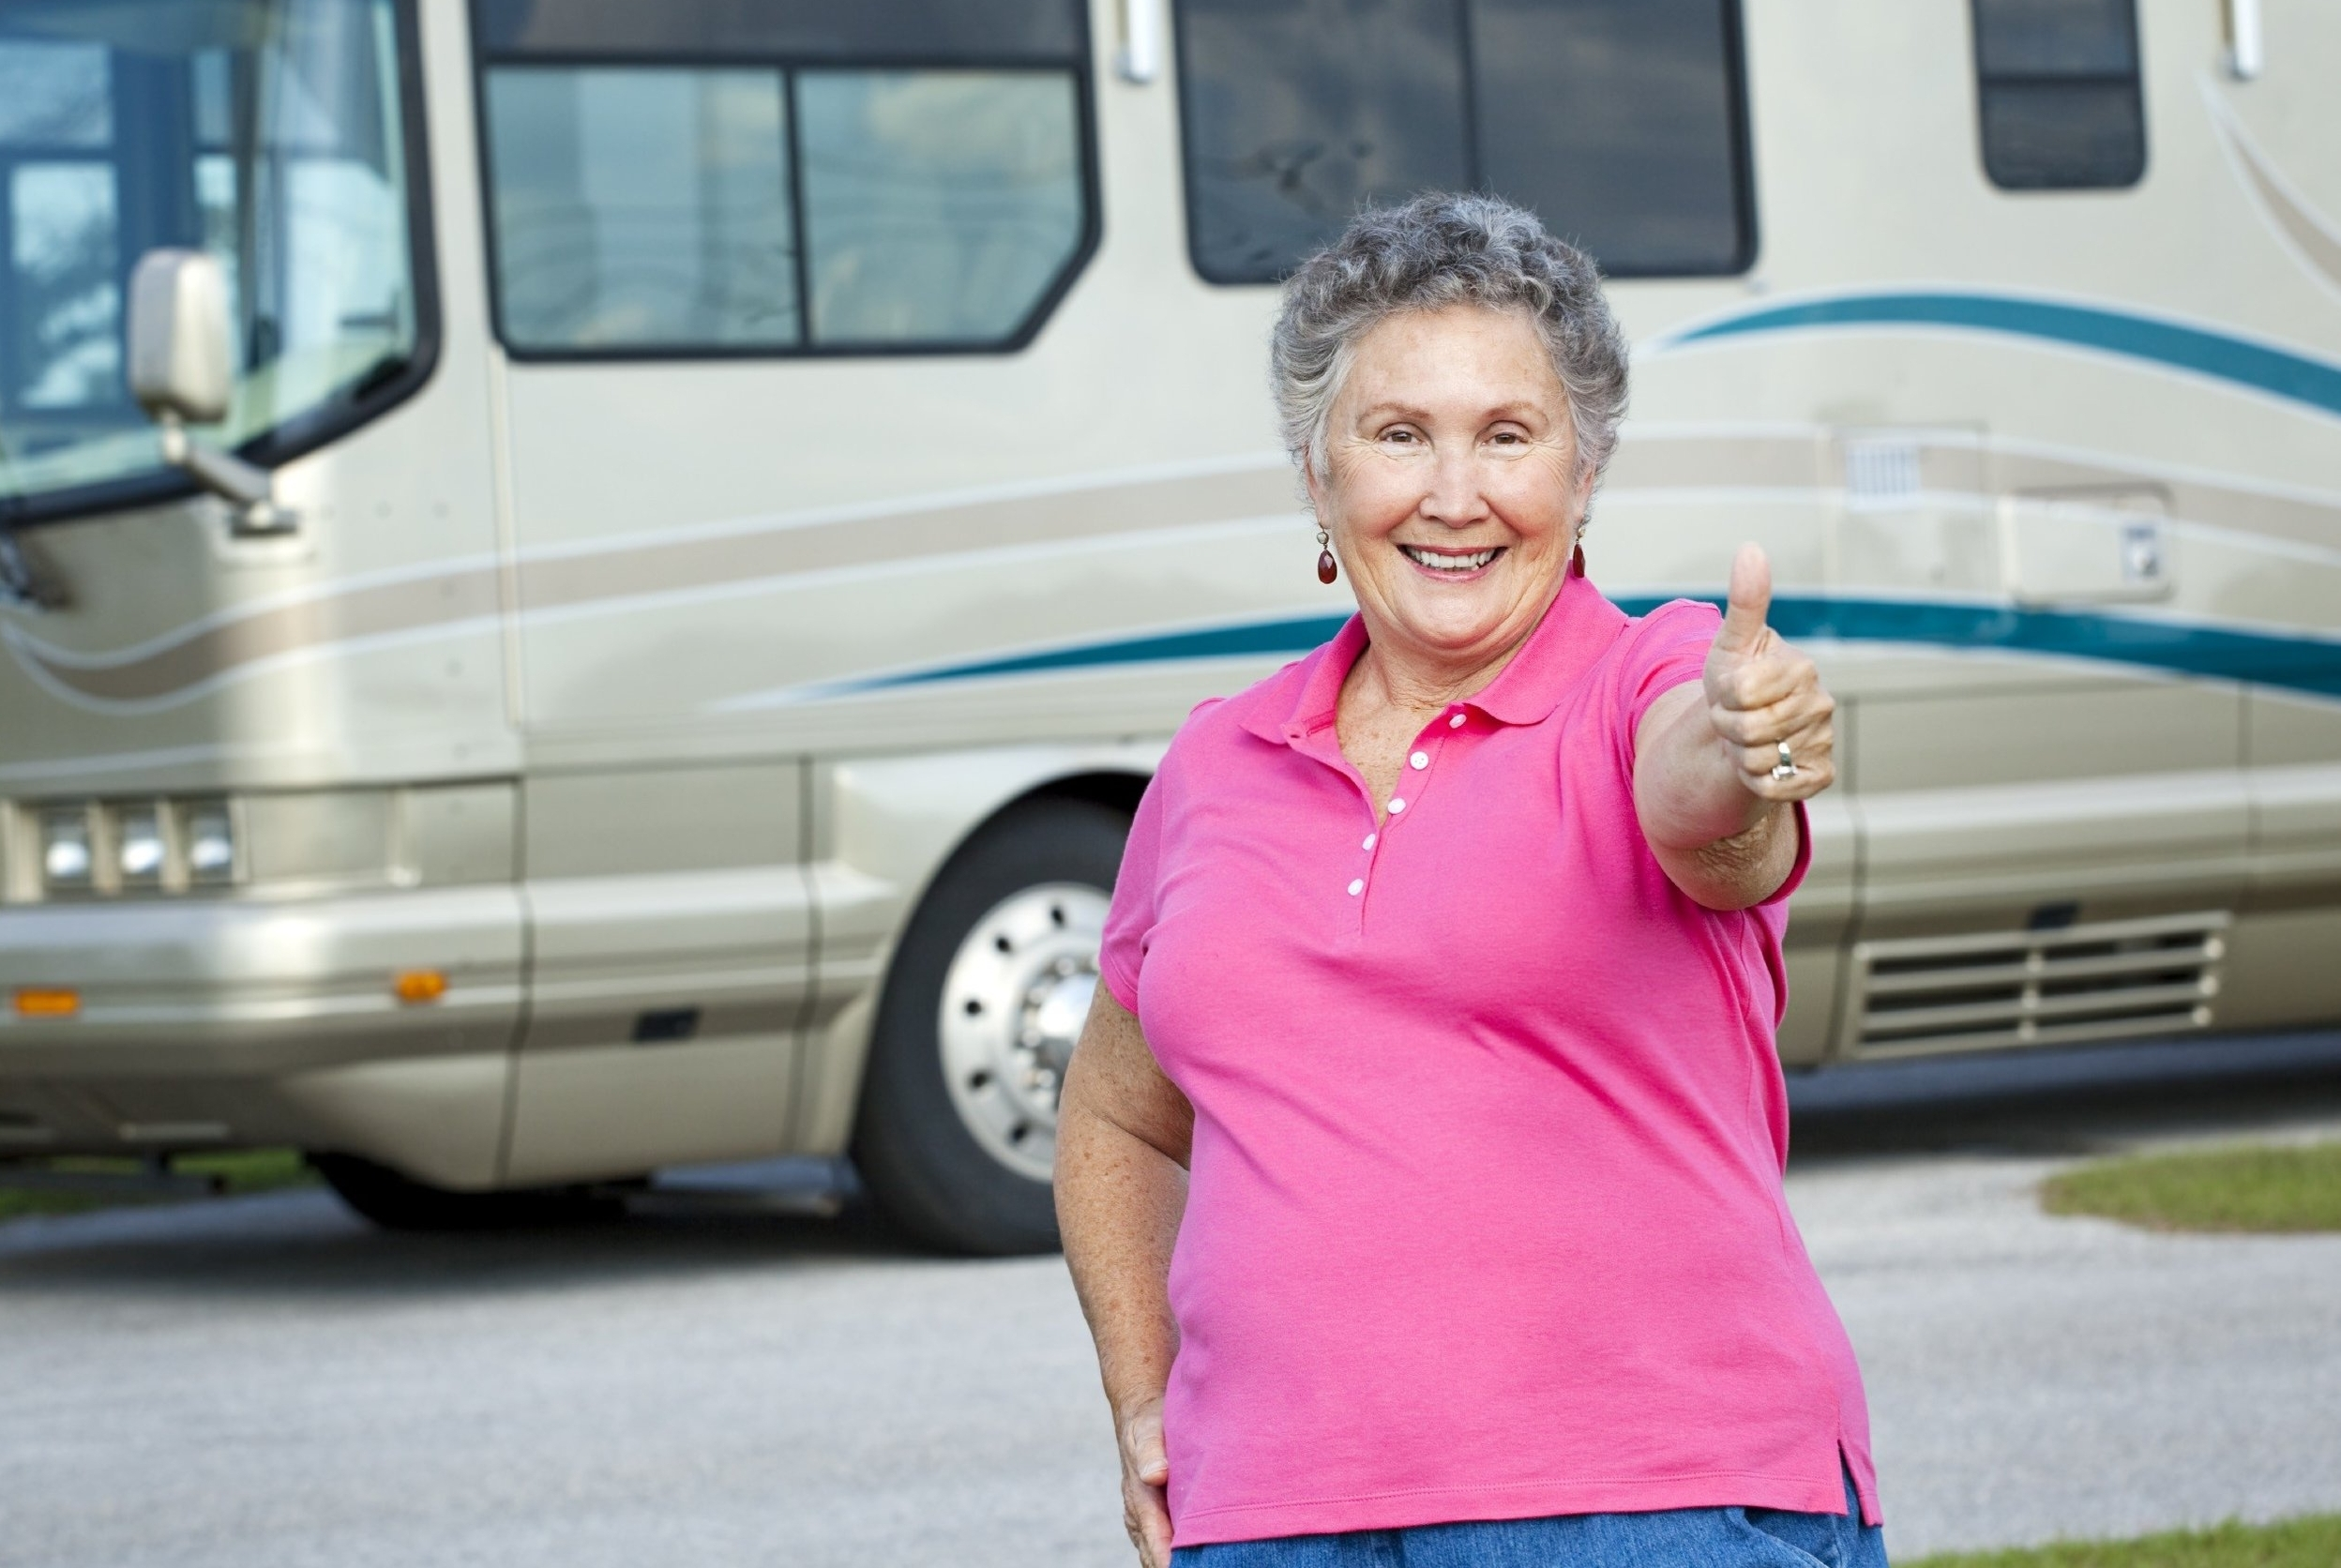 Rent a Bus for Senior Citizen Travel